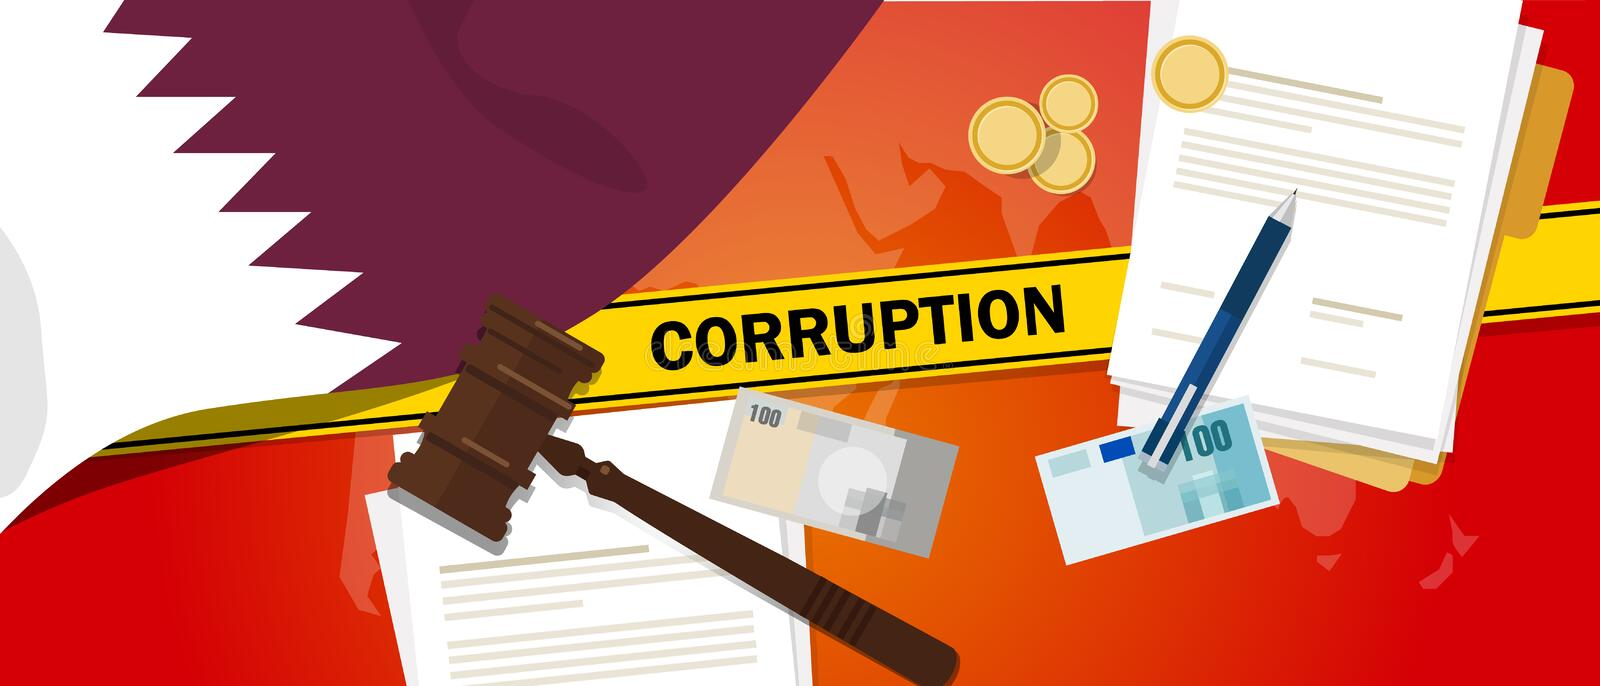 Qatar corruption money bribery financial law contract police line for a case scandal government official. Vector vector illustration